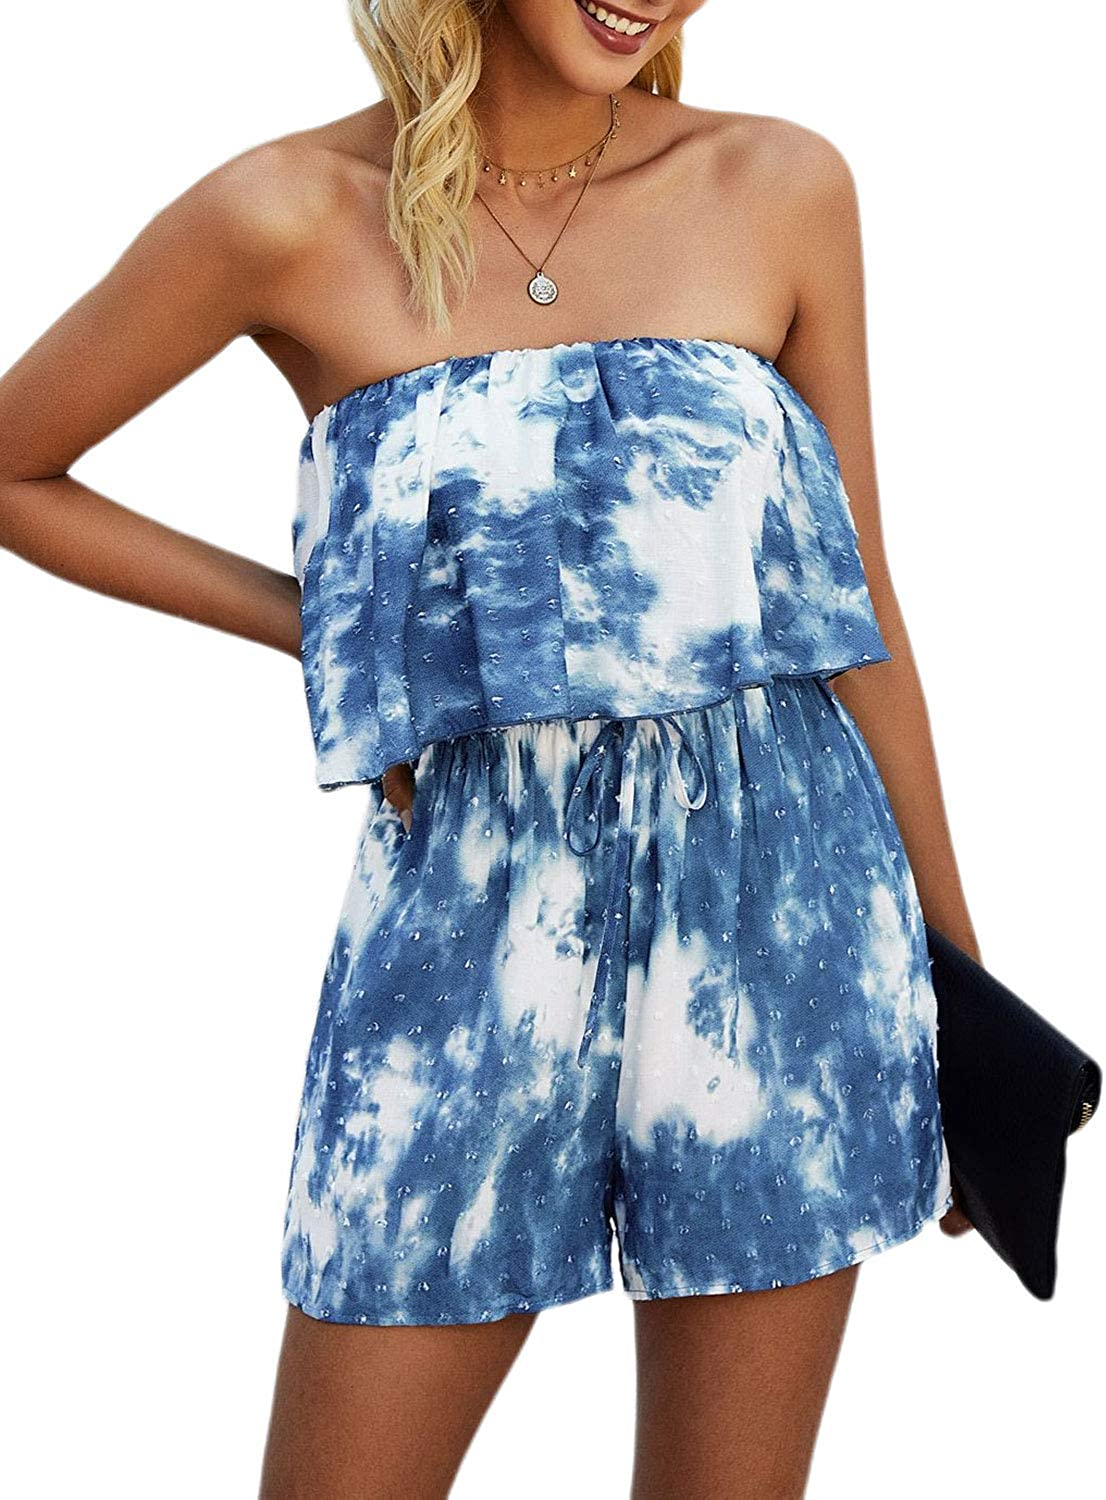 Miessial Women's Casual Tie Classic Dye Spring new work one after another Shoulder Rompers Off Summe Print